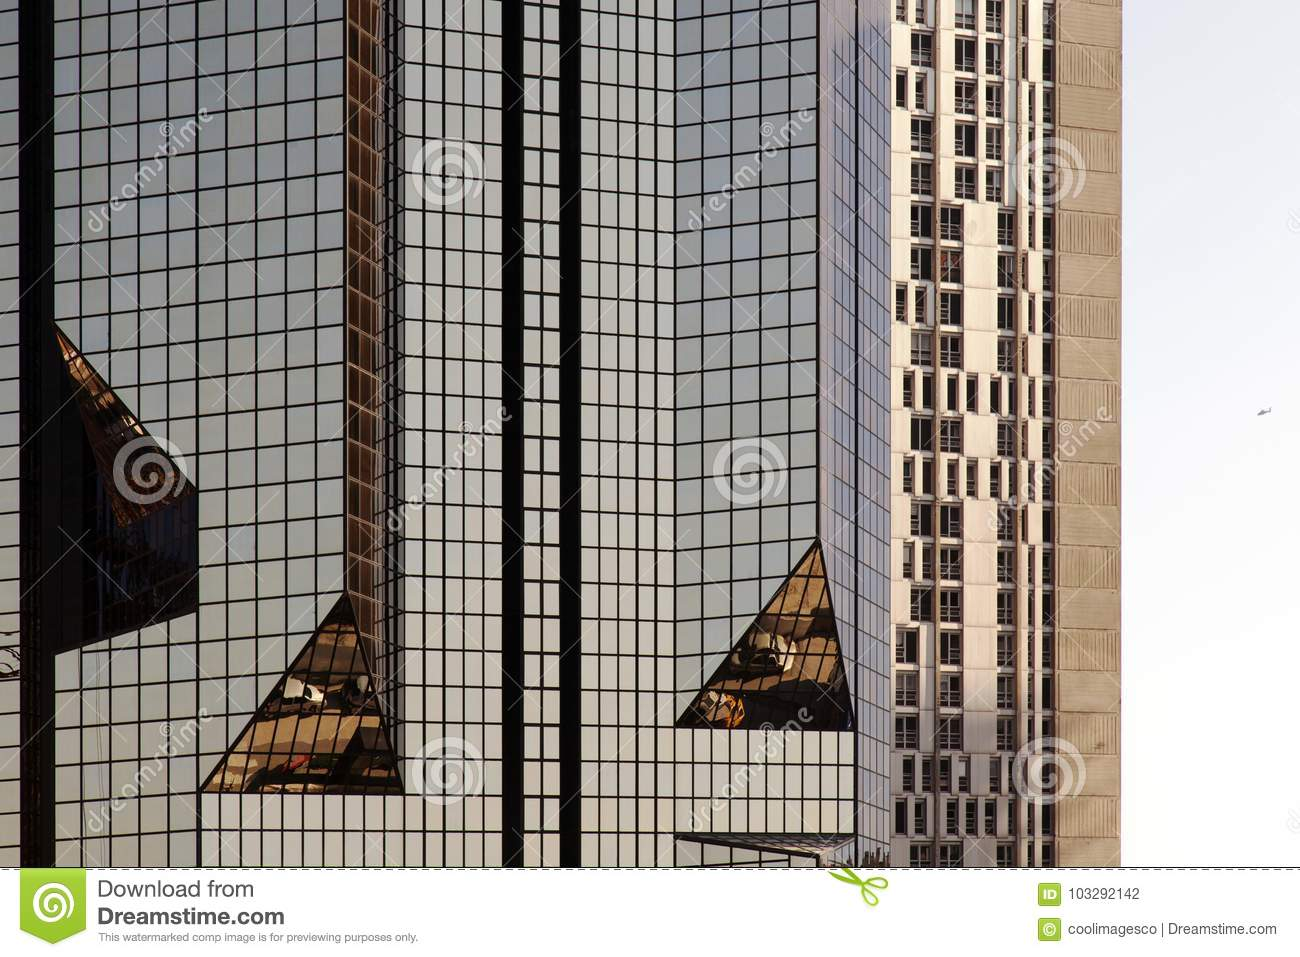 A glass modern building with geometric angles and reflection